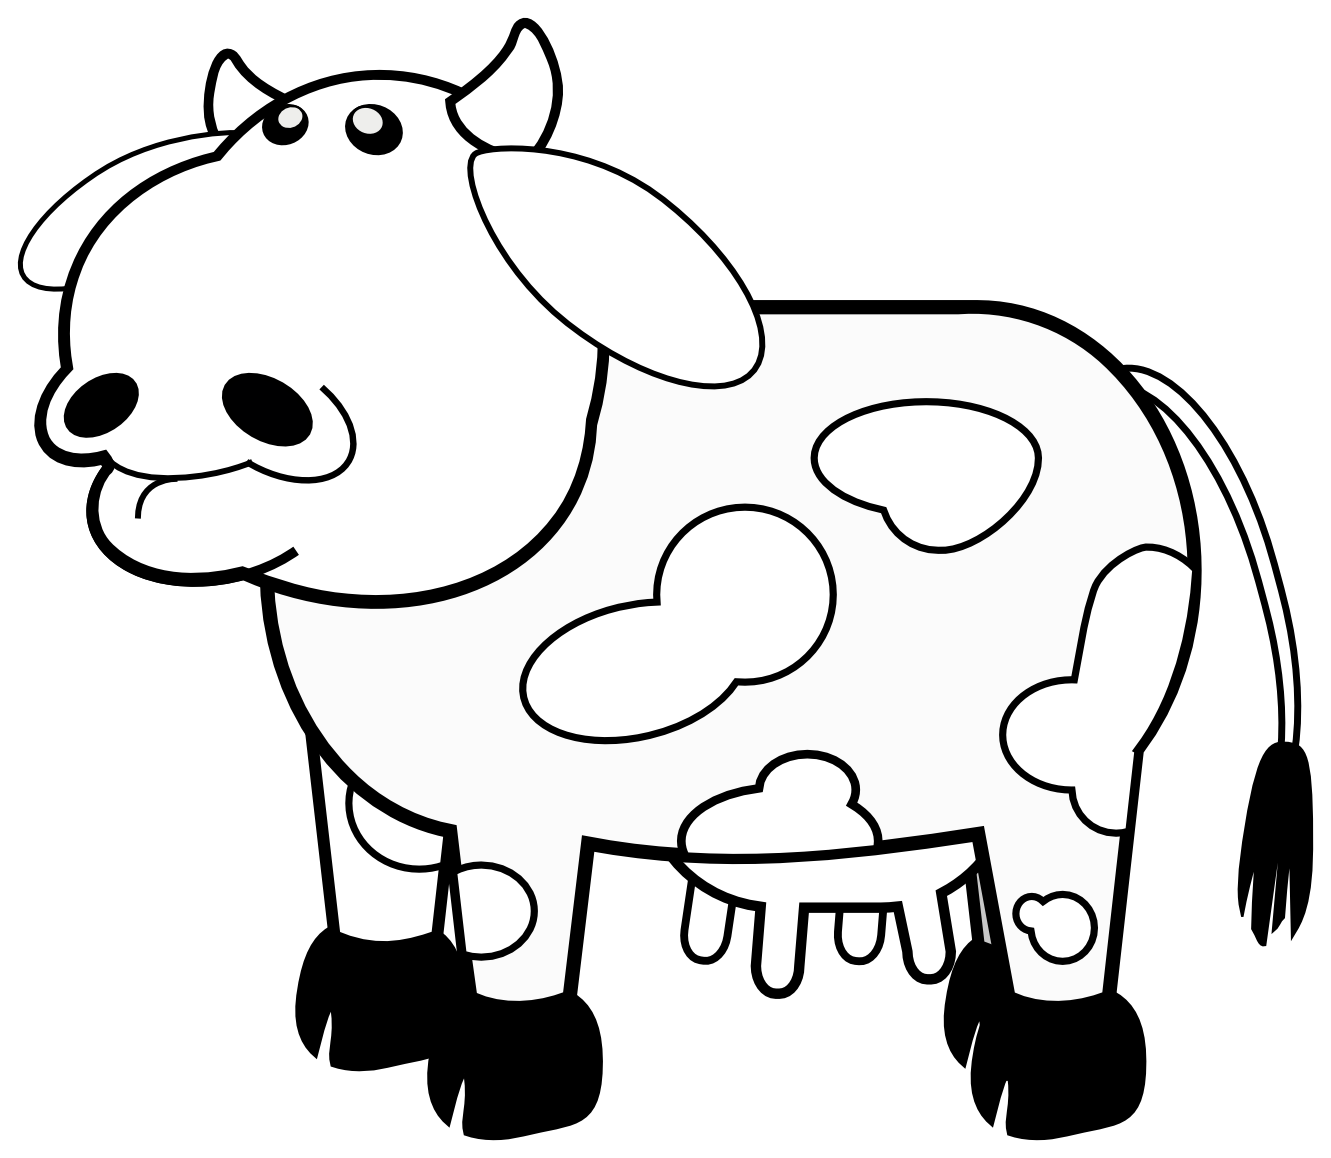 1331x1158 Cow Clipart Black And White Clipart Panda